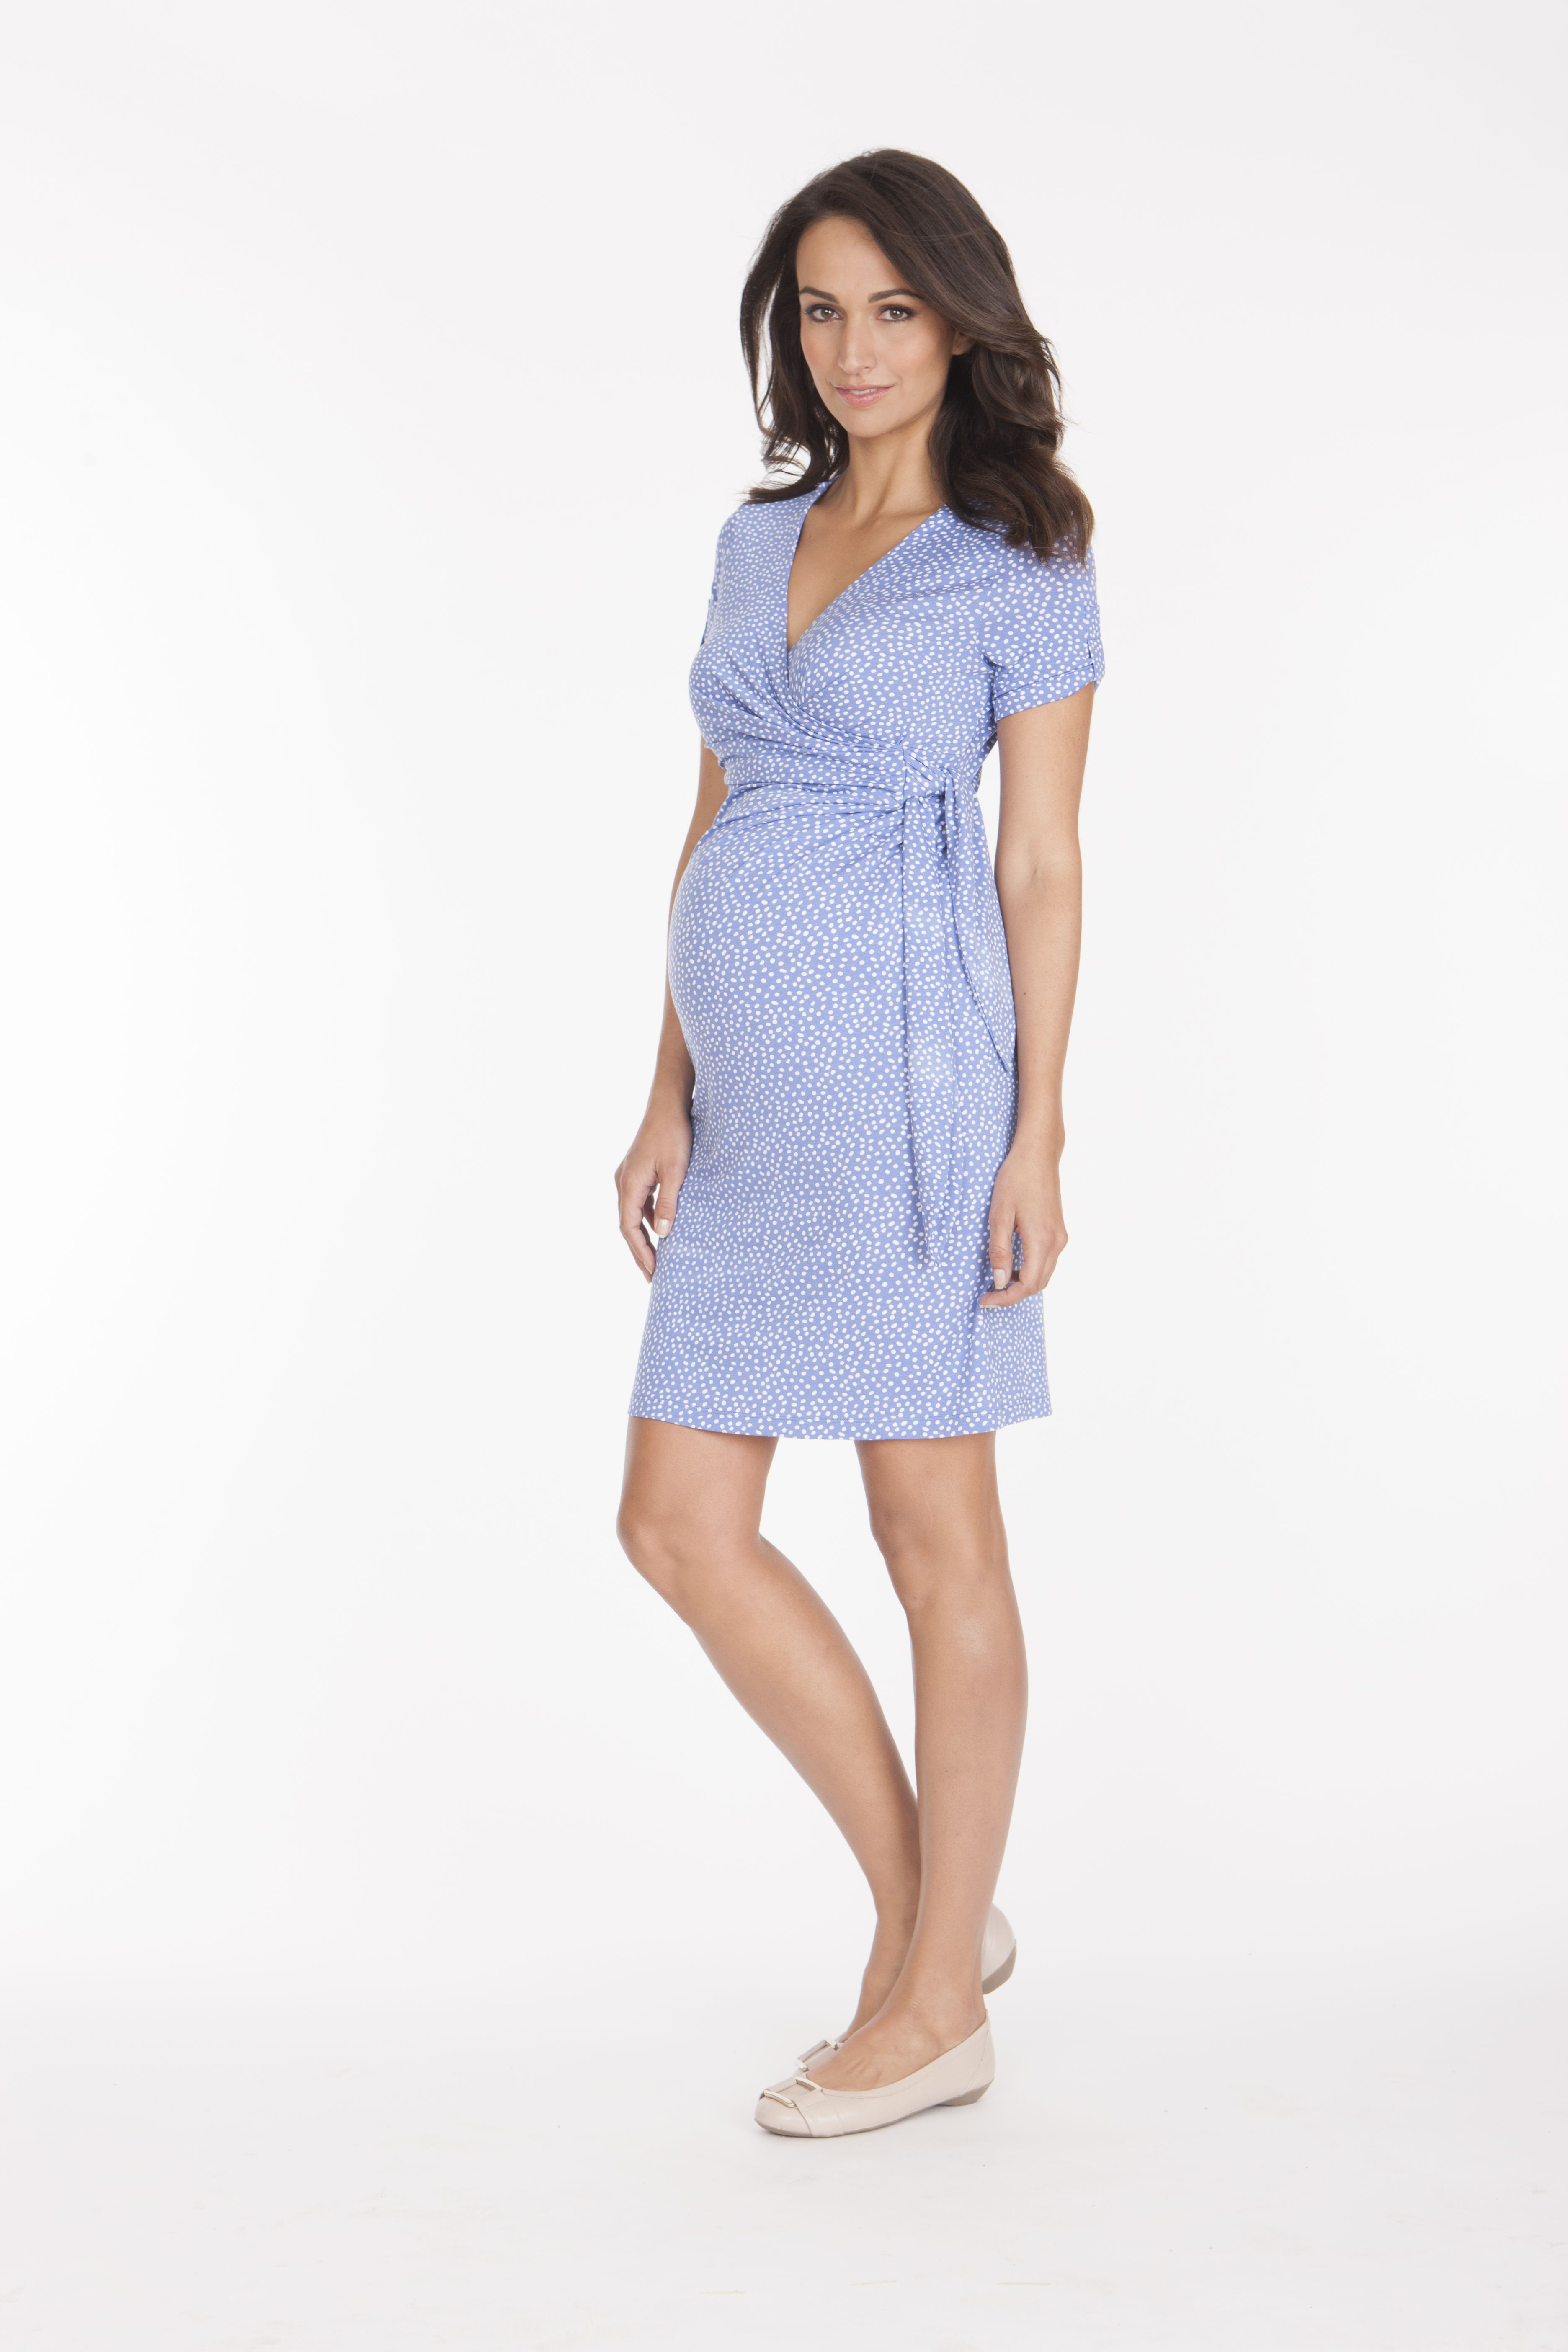 Perfect for a baby shower or any occasion Worn by Kate